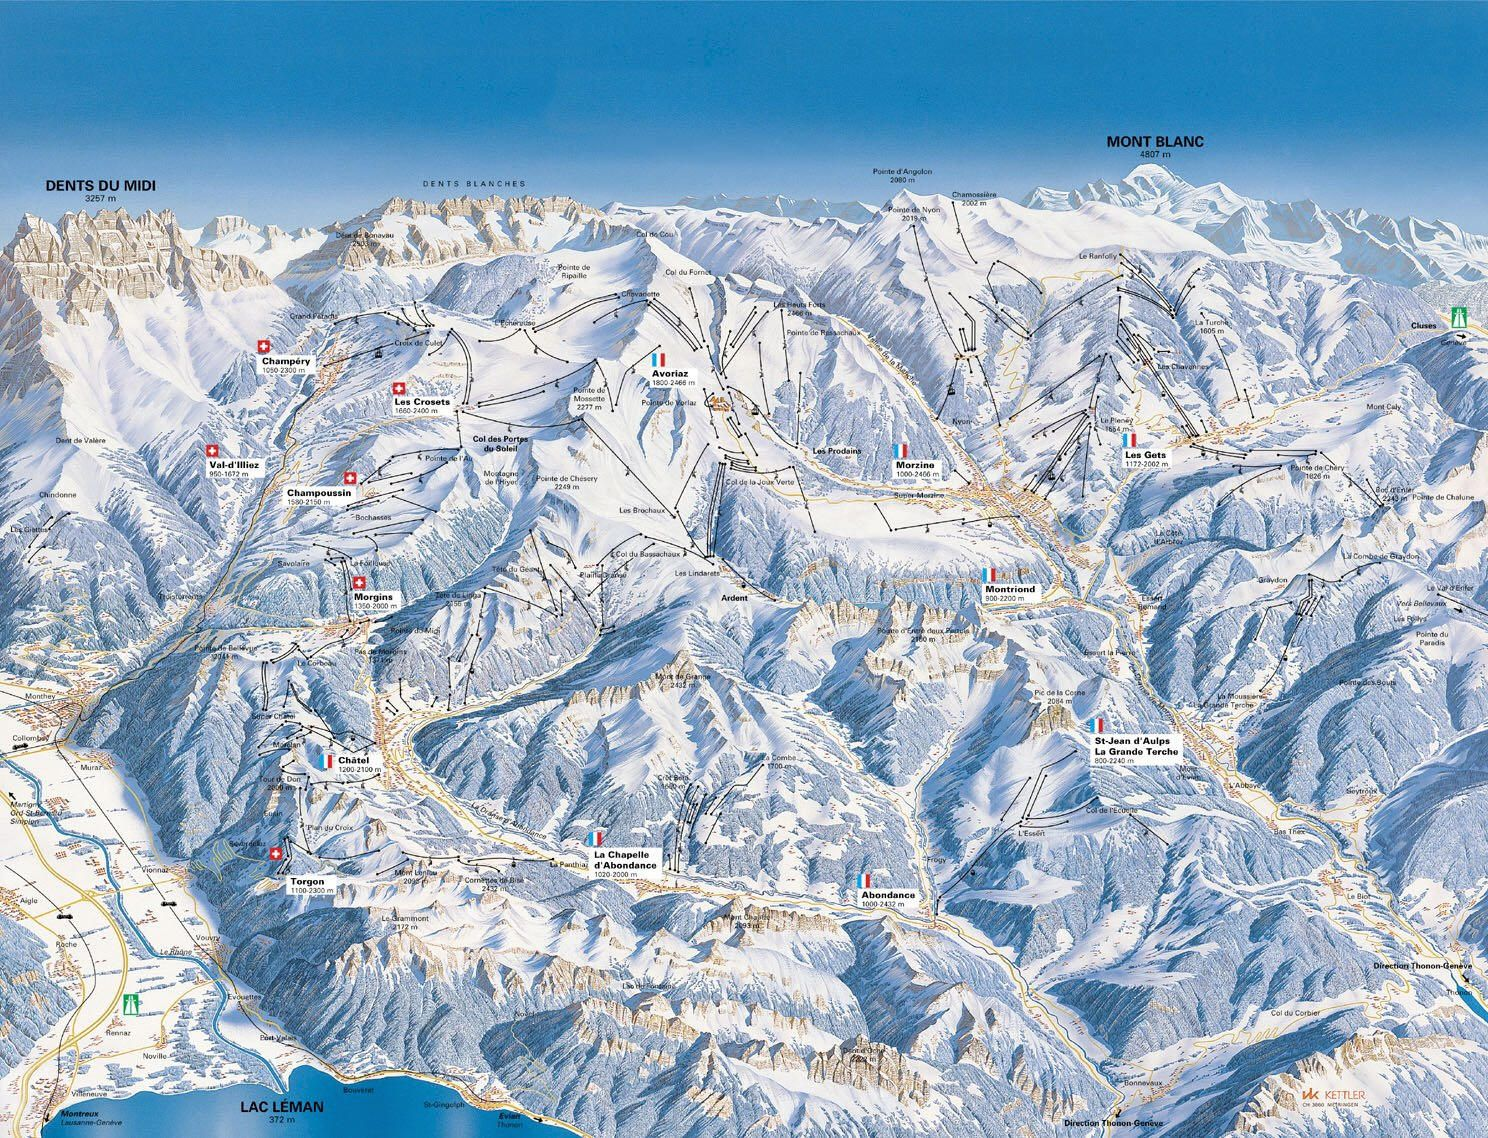 Le Meilleur Shred The French Swiss Alps Dream Board Skiing France Ce Mois Ci